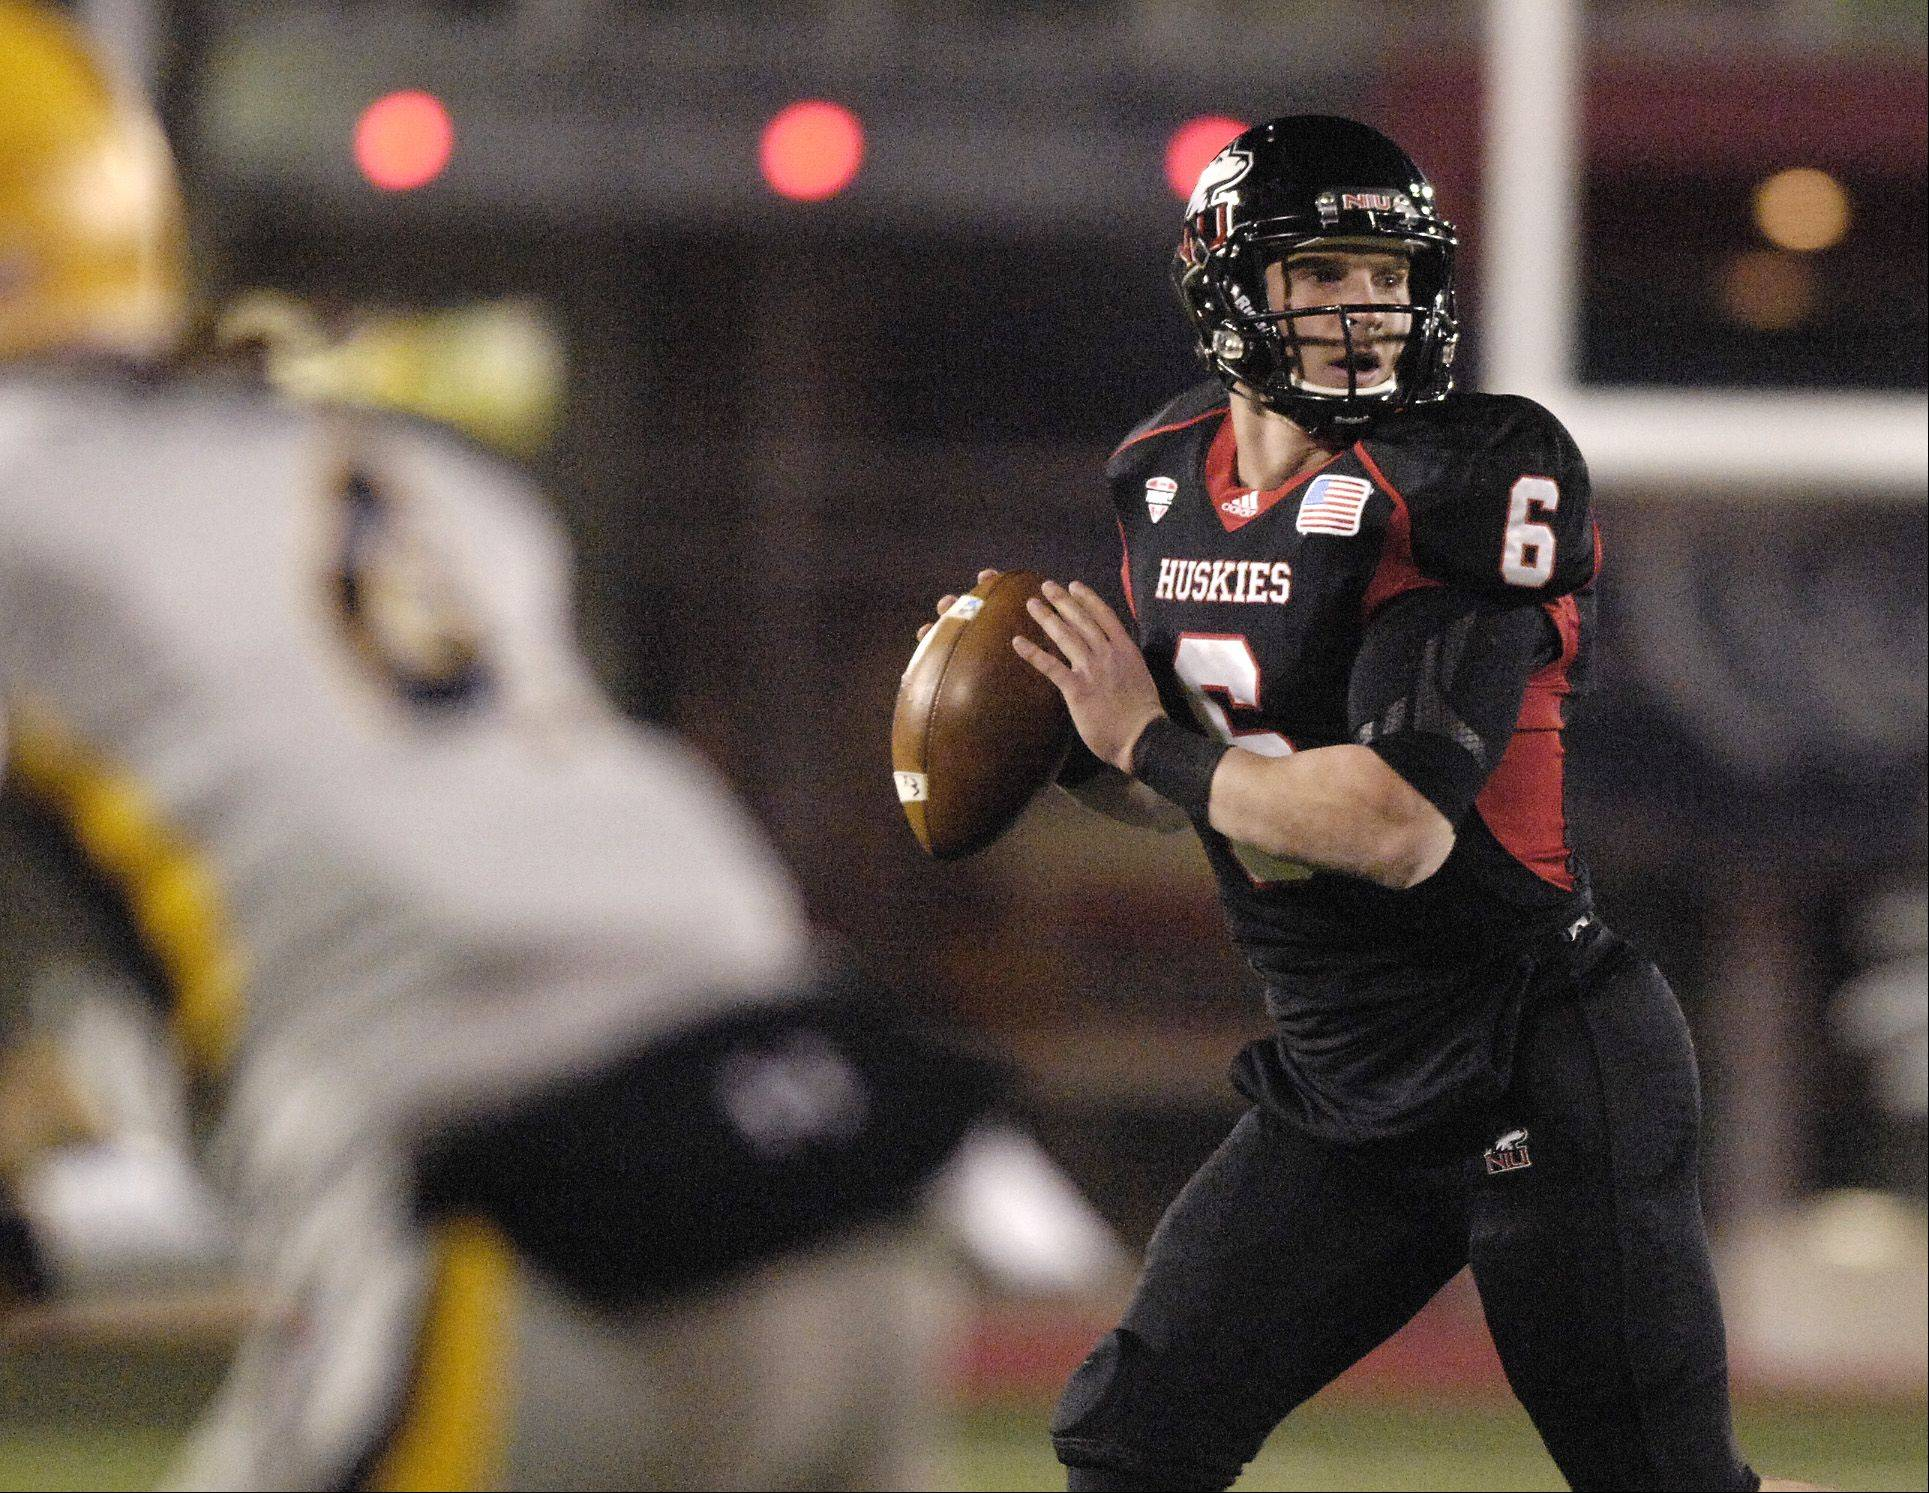 Last week Northern Illinois University quarterback Jordan Lynch threw for 407 yards against Toledo and ran for 162 yards. He needs just 199 rushing yards to break the single season mark by Michigan�s Denard Robinson.